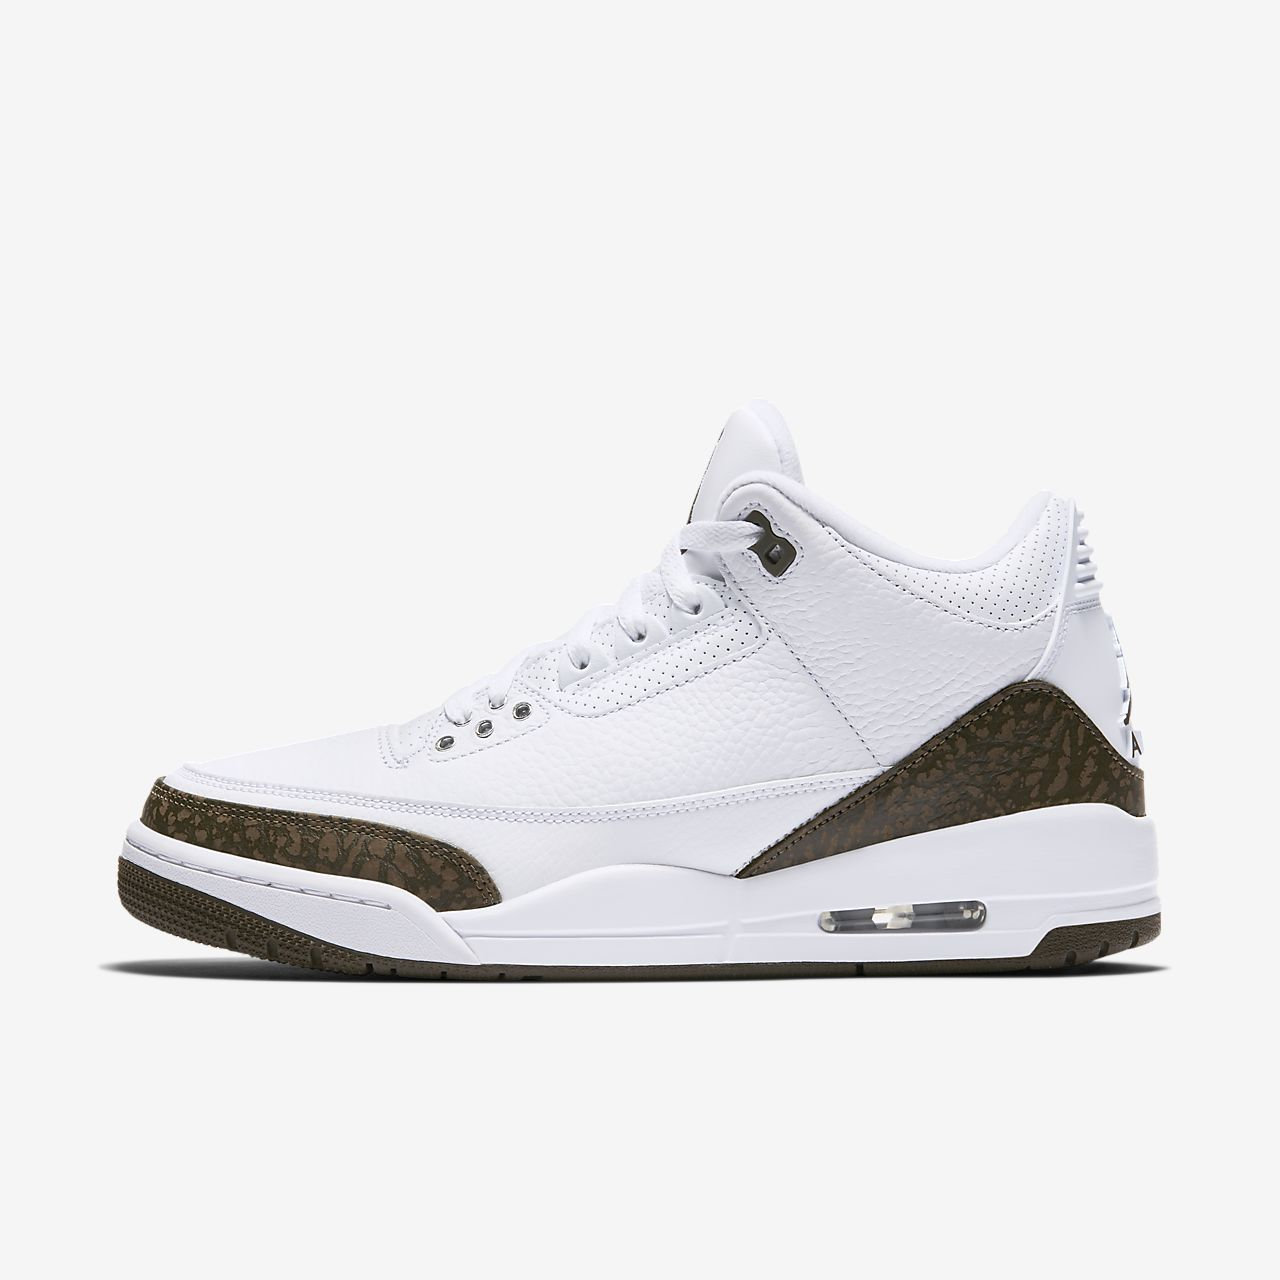 5da43fb9bd883c Air Jordan 3 Retro Men s Shoe. Nike.com